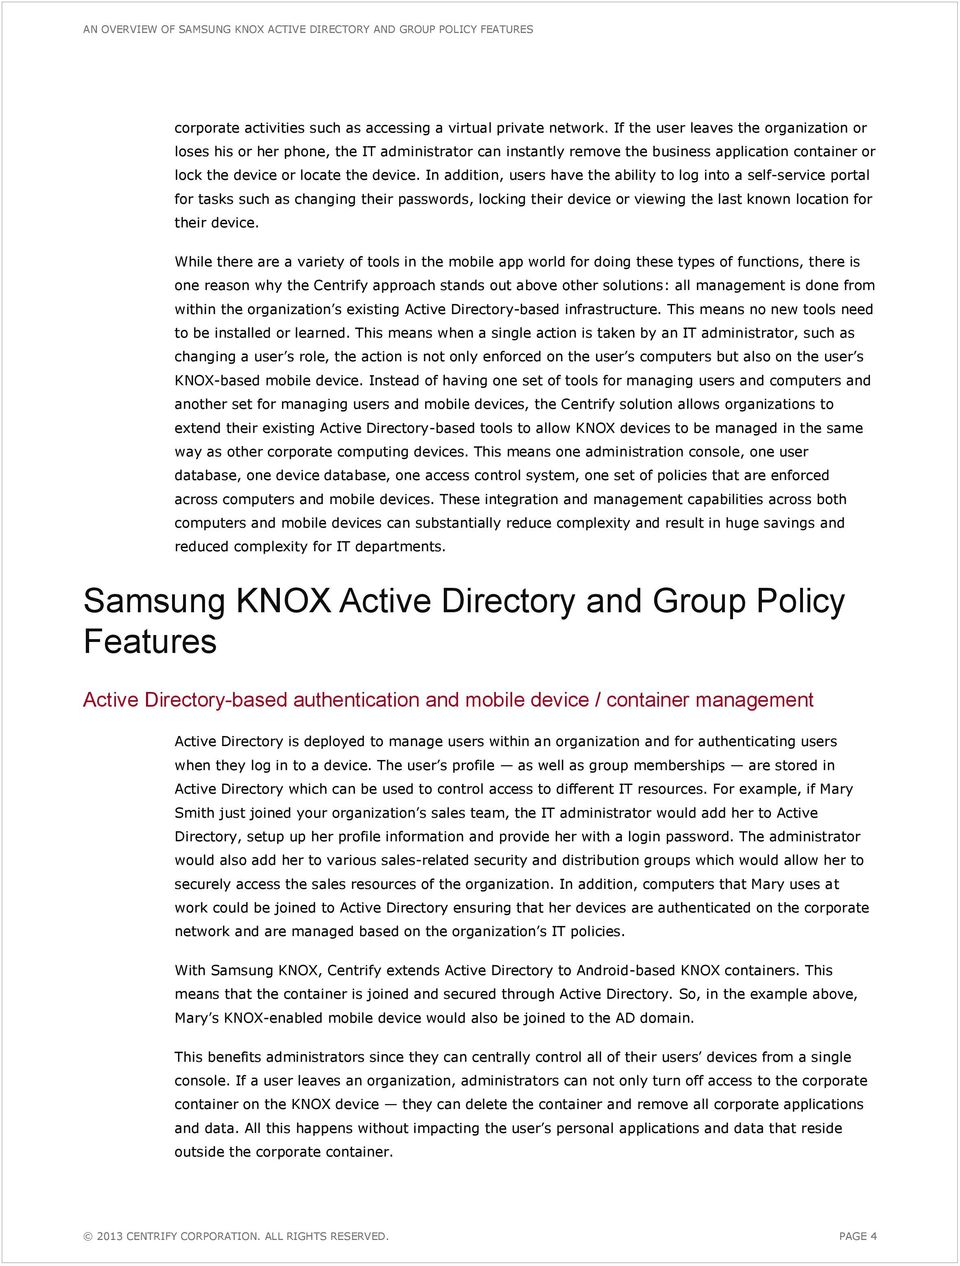 An Overview of Samsung KNOX Active Directory and Group Policy